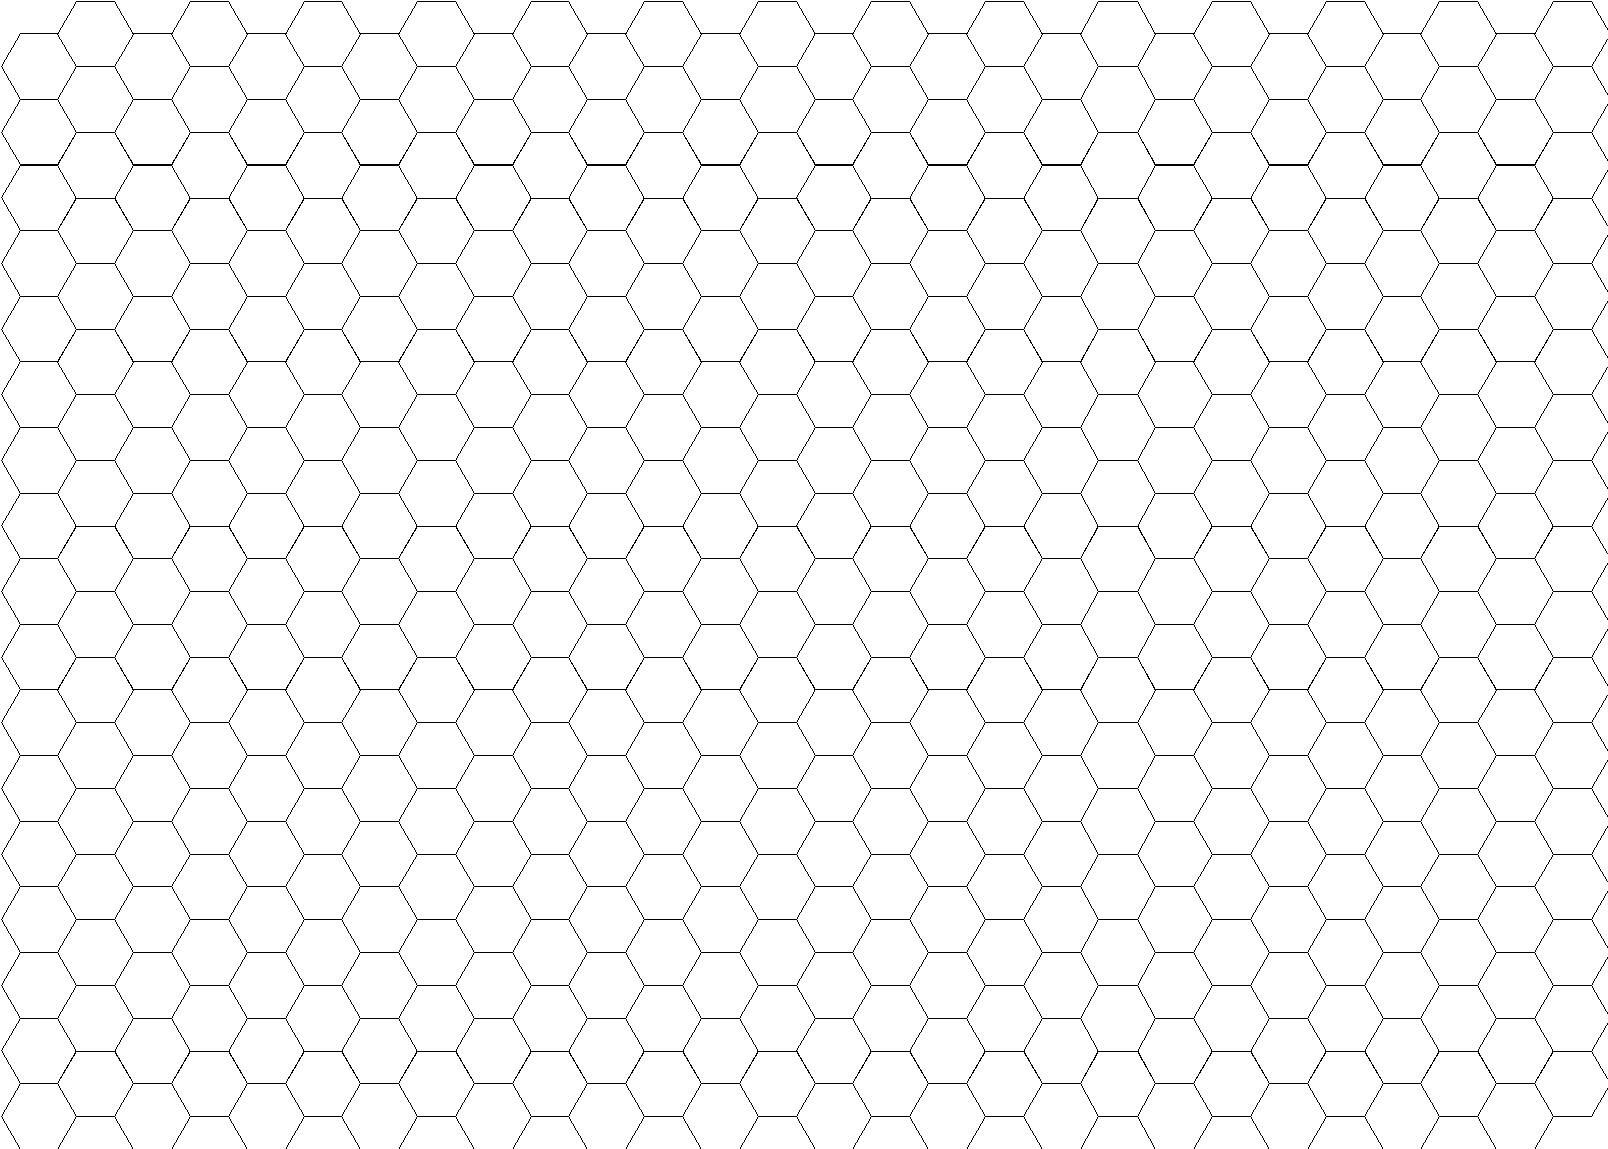 It is an image of Candid Printable Hexagon Grid